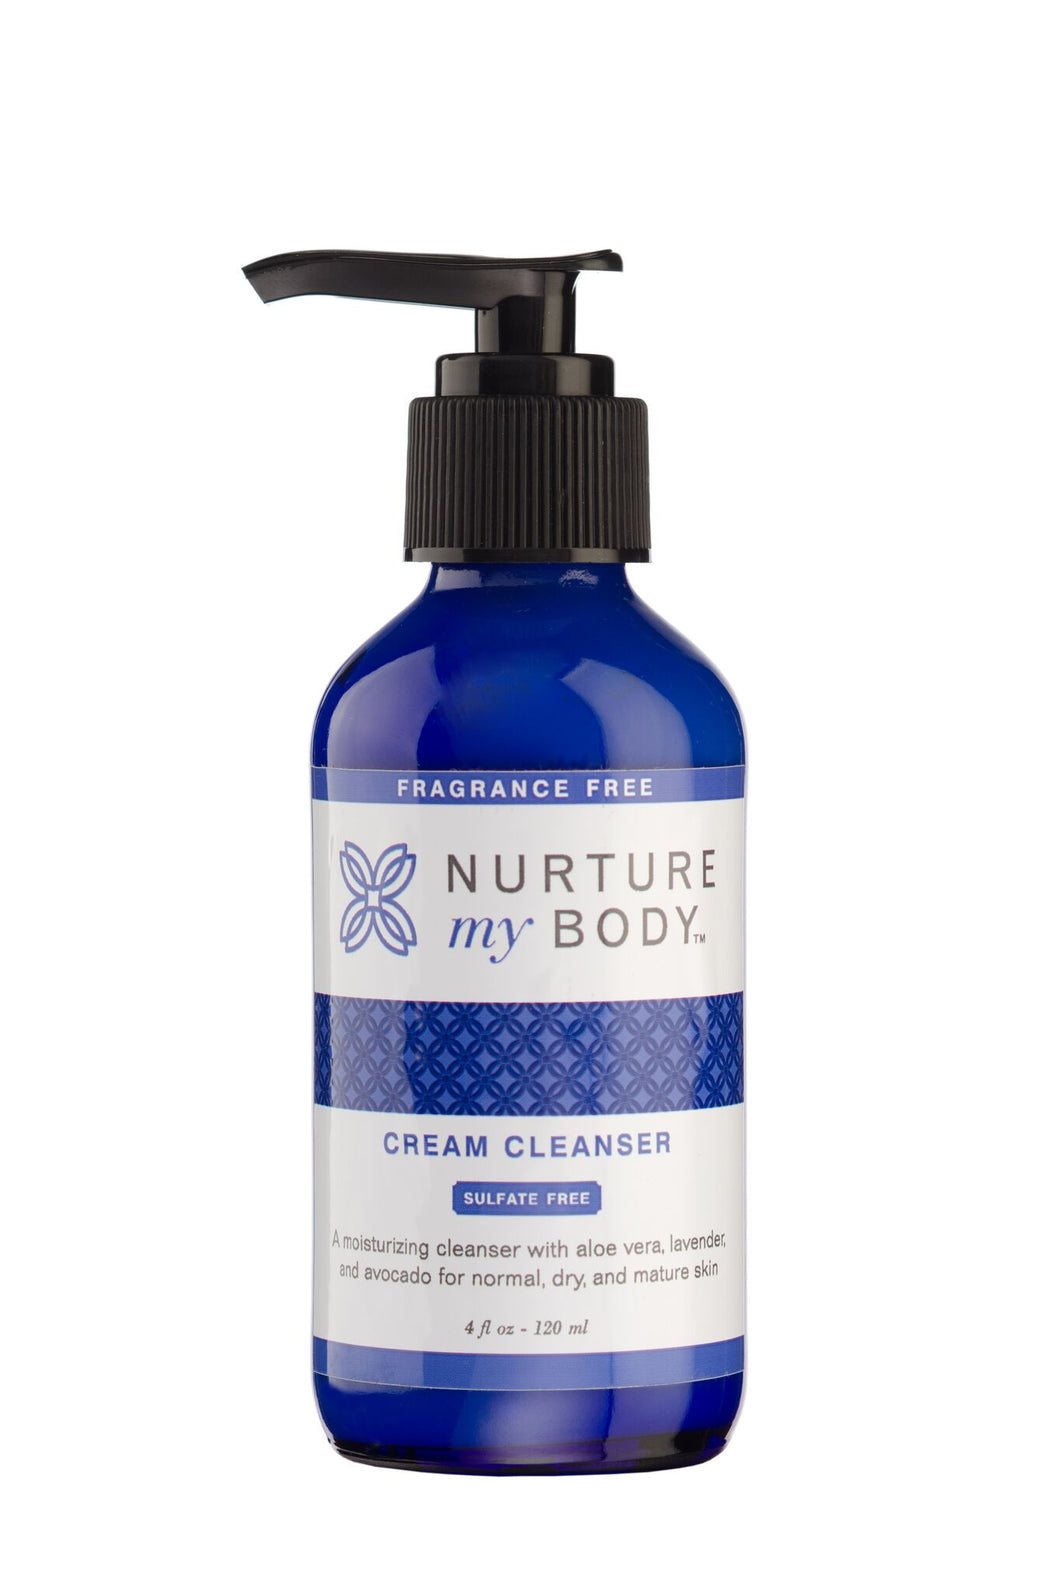 NURTURE MY BODY Cream Cleanser有機潔面乳霜(無香味)